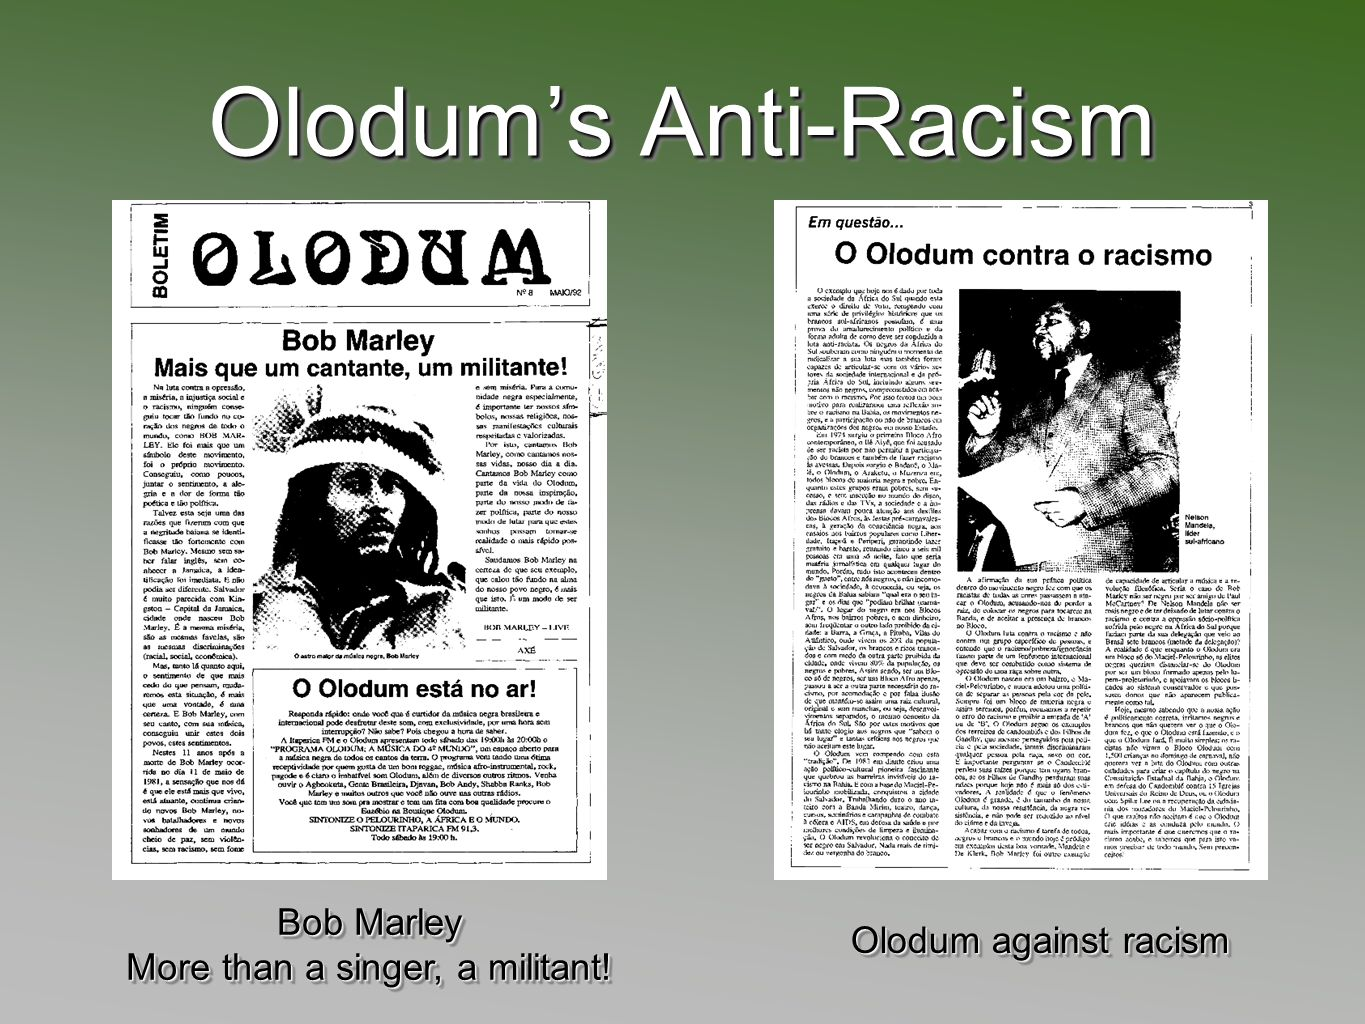 Olodums Anti-Racism Bob Marley More than a singer, a militant! Bob Marley More than a singer, a militant! Olodum against racism